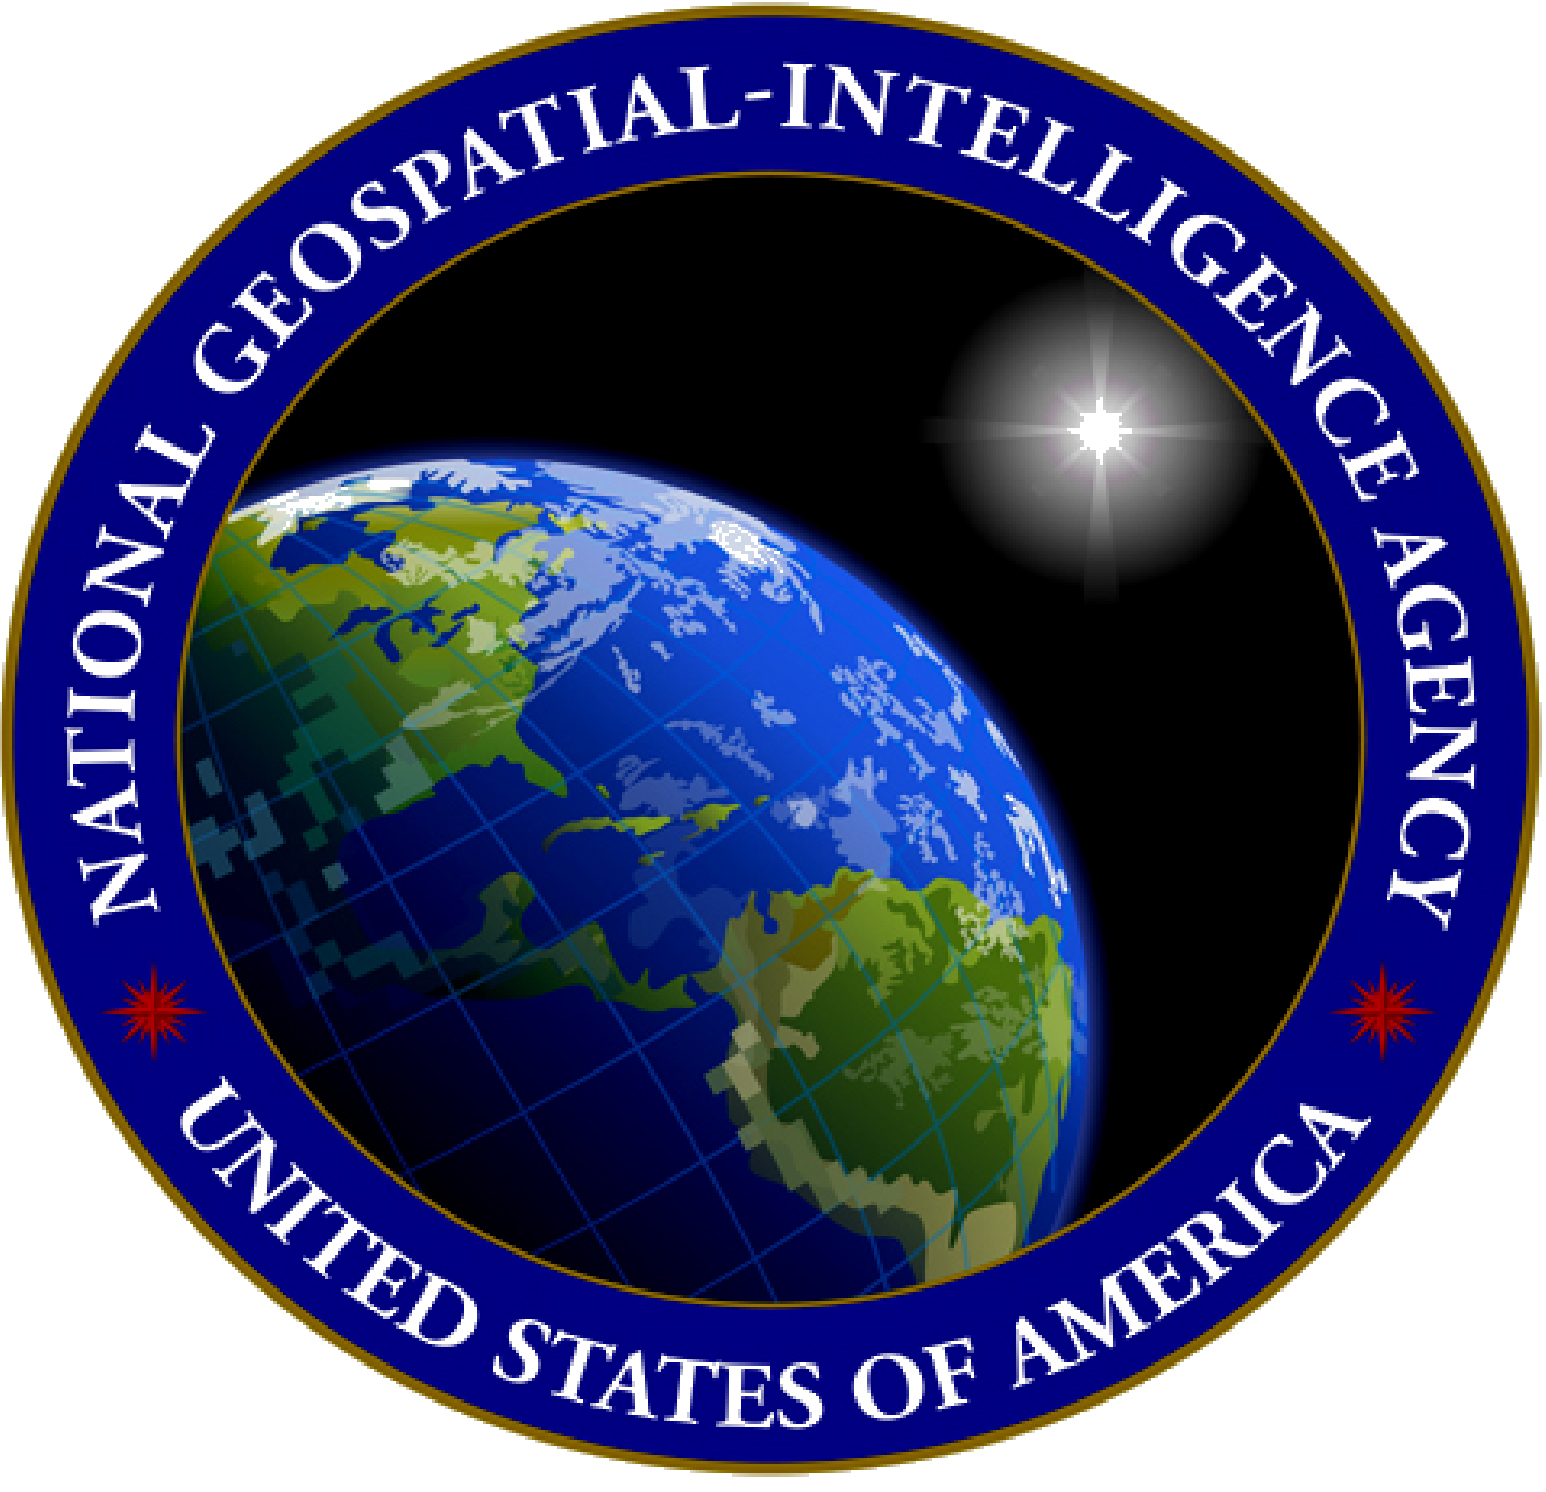 Group logo of National Geospatial-Intelligence Agency